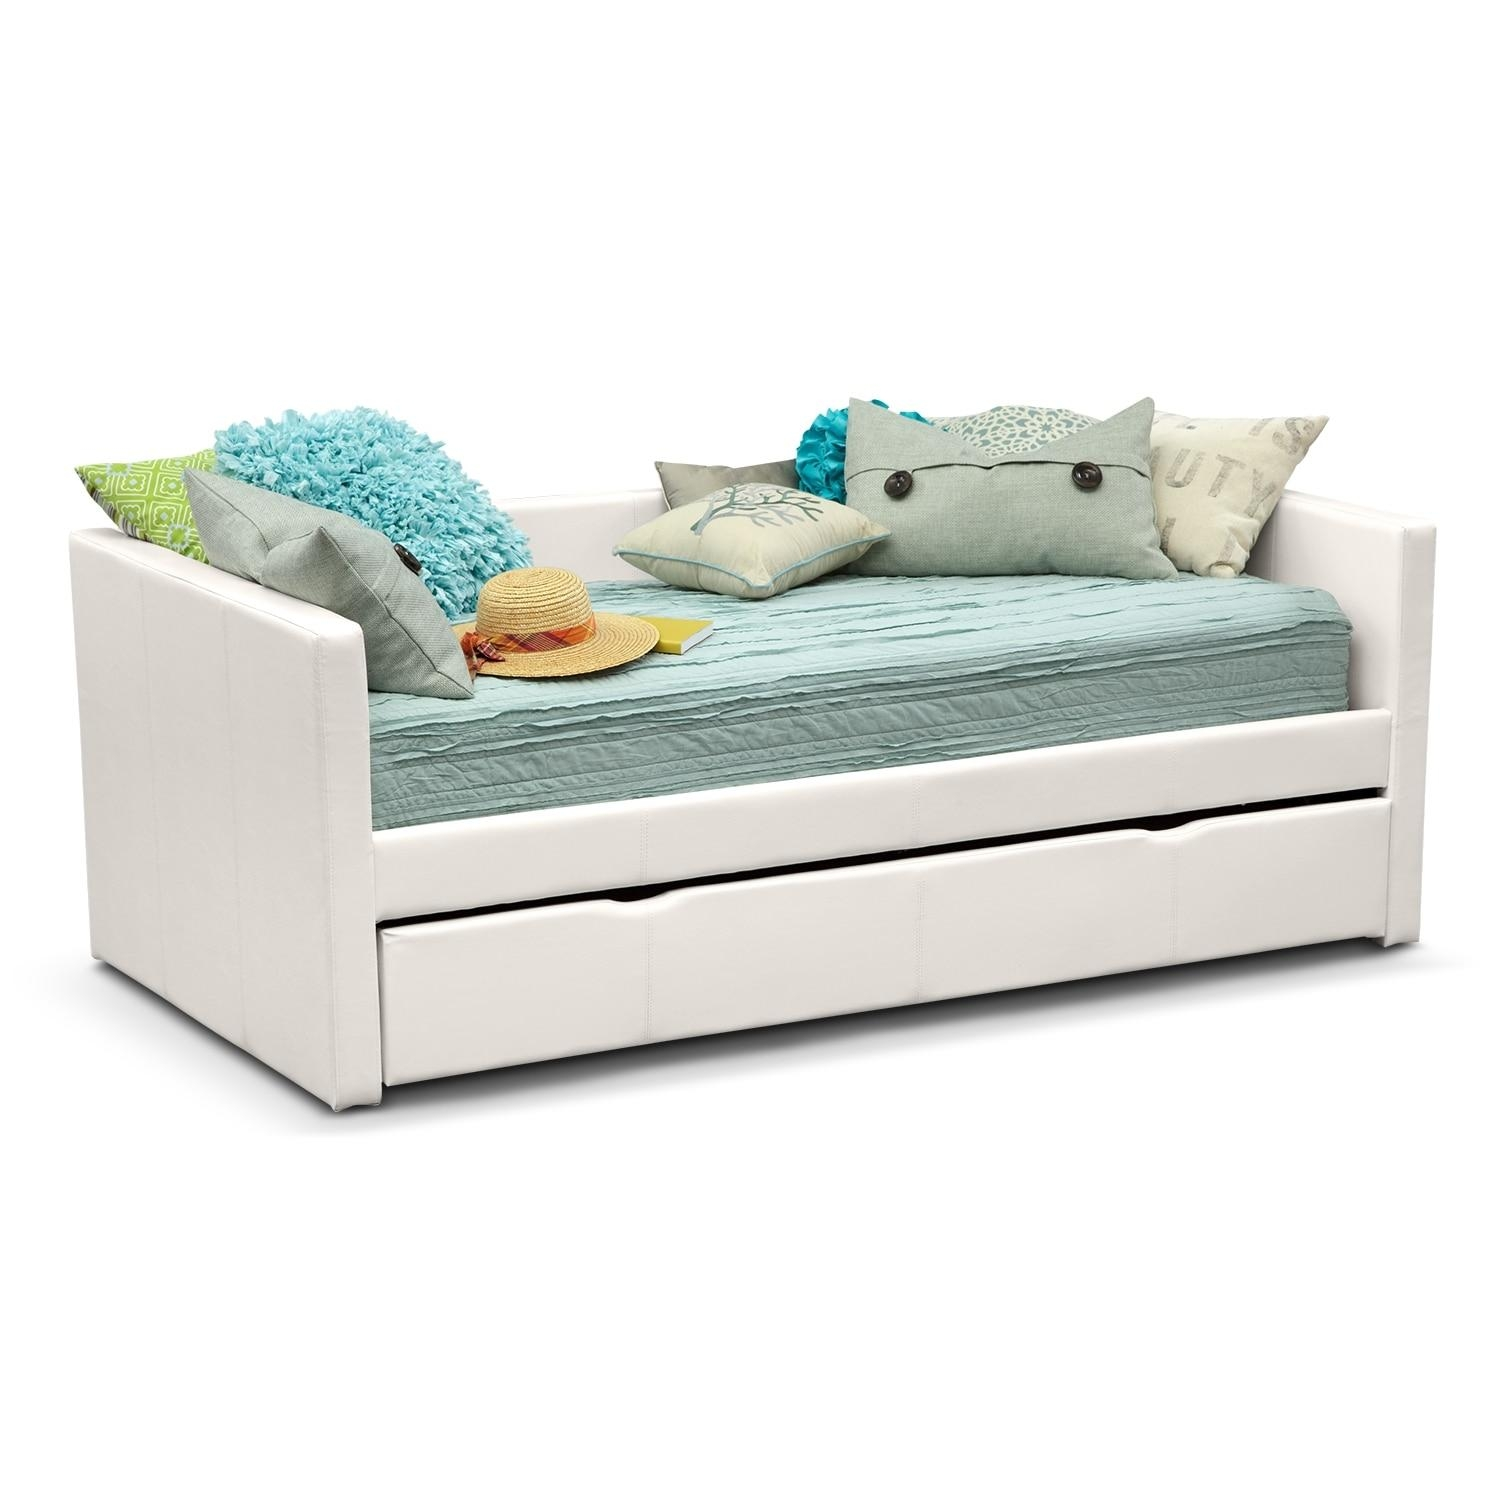 Daybeds & Trundle Beds | Bedroom Furniture | American Signature With Sofas With Trundle (Image 2 of 20)